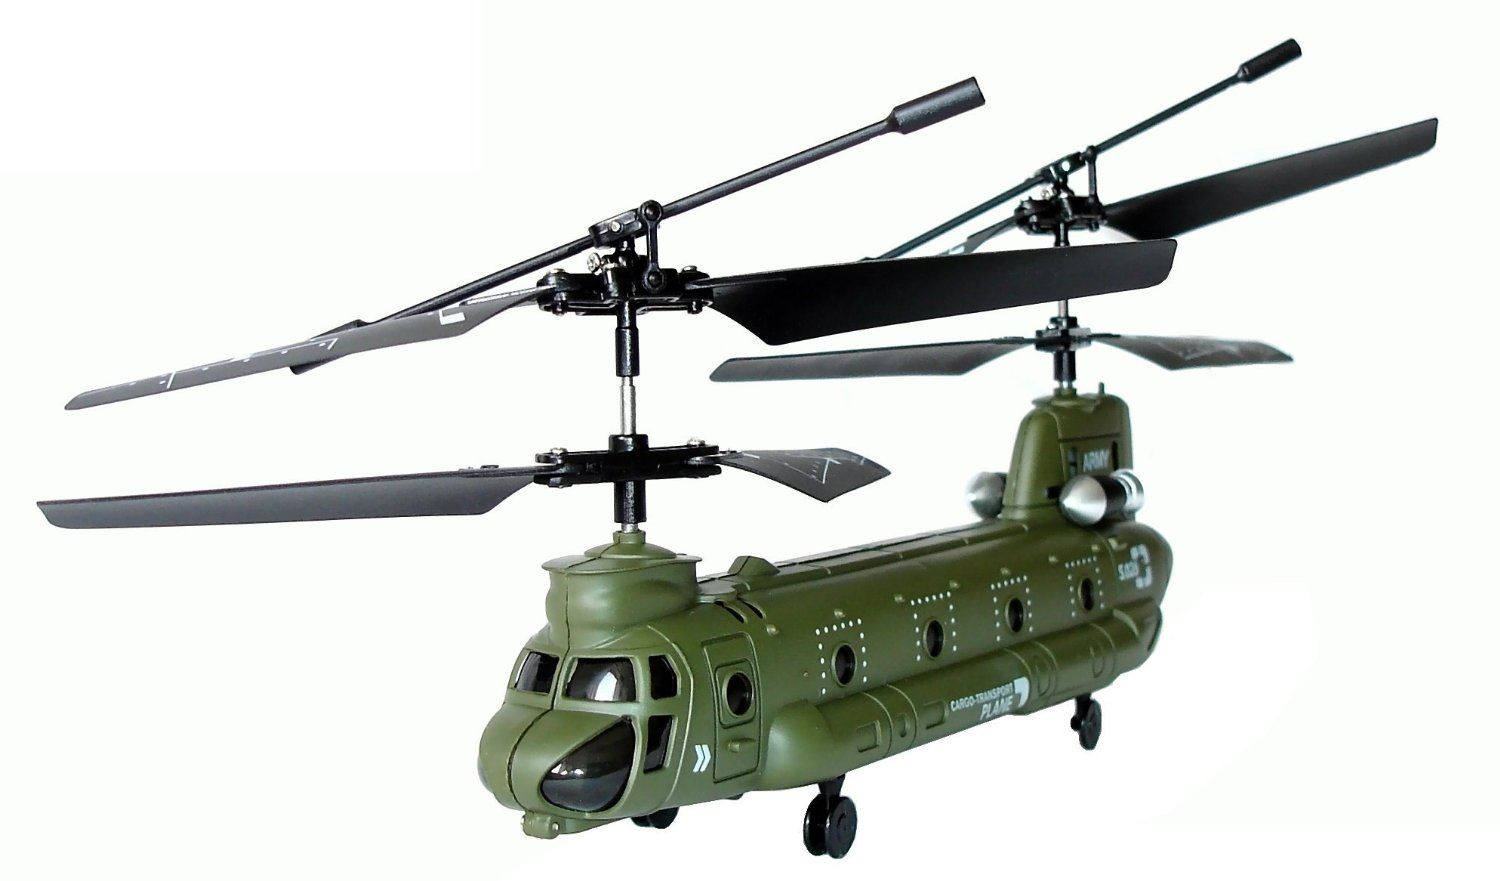 remote control helicopter s107 with 390929994339 on Watch besides Best Micro Helicopter 2010 respond besides 1424271122 besides Best Remote Control Helicopters For Kids in addition 390929994339.